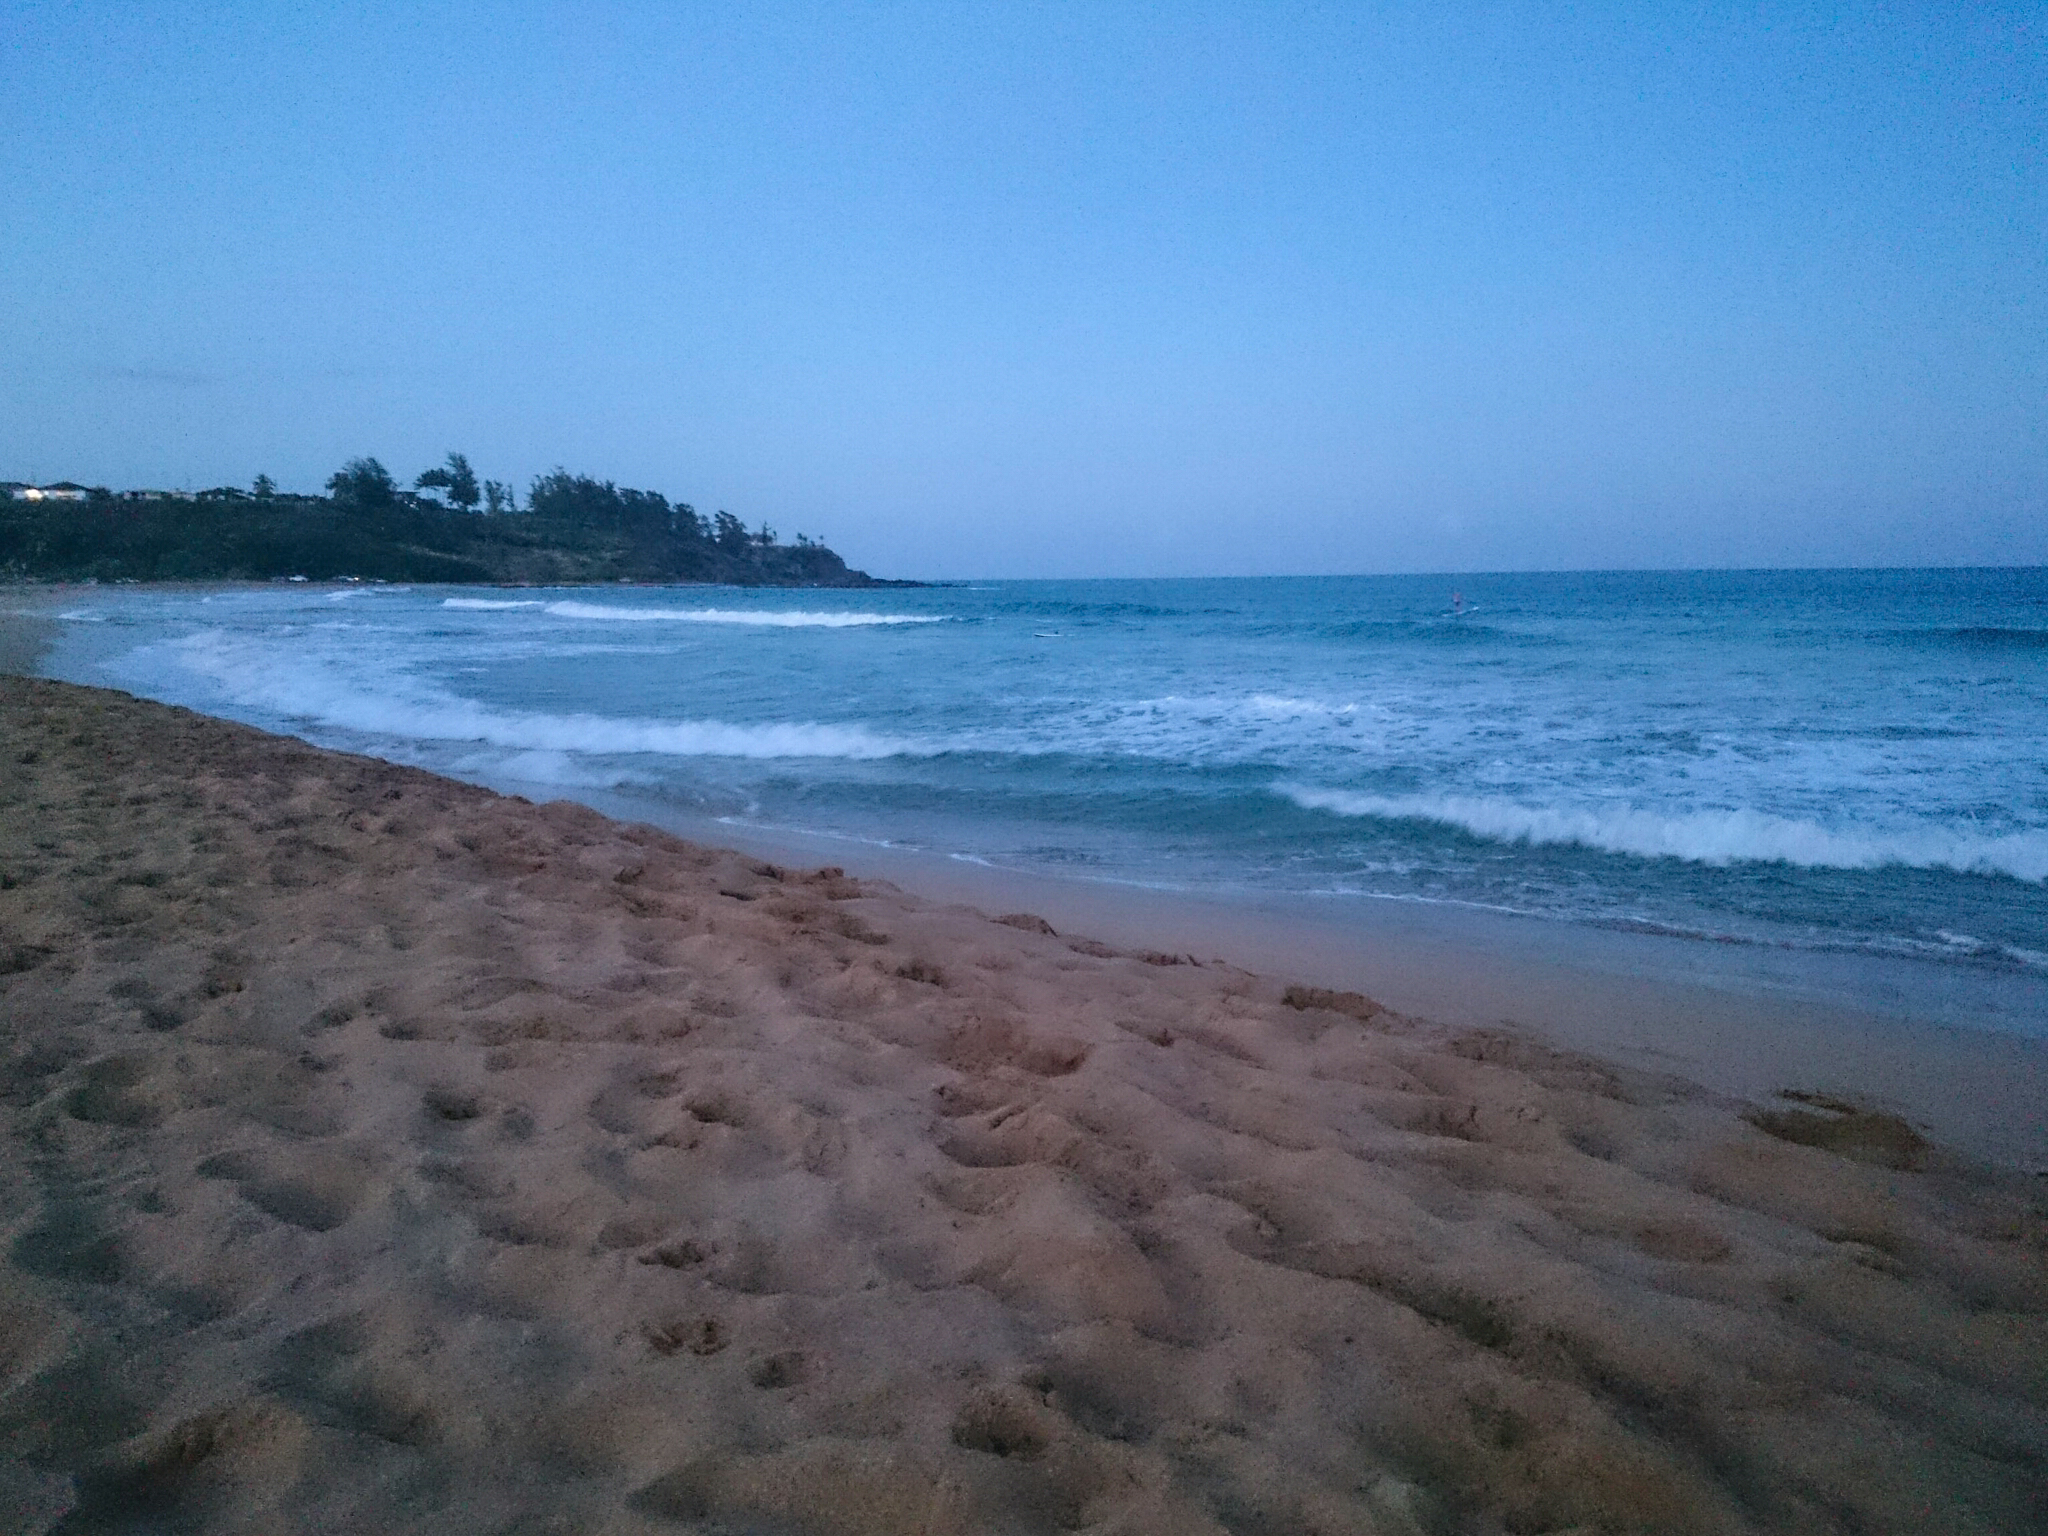 Kealia beach in Kauai, Hawaii